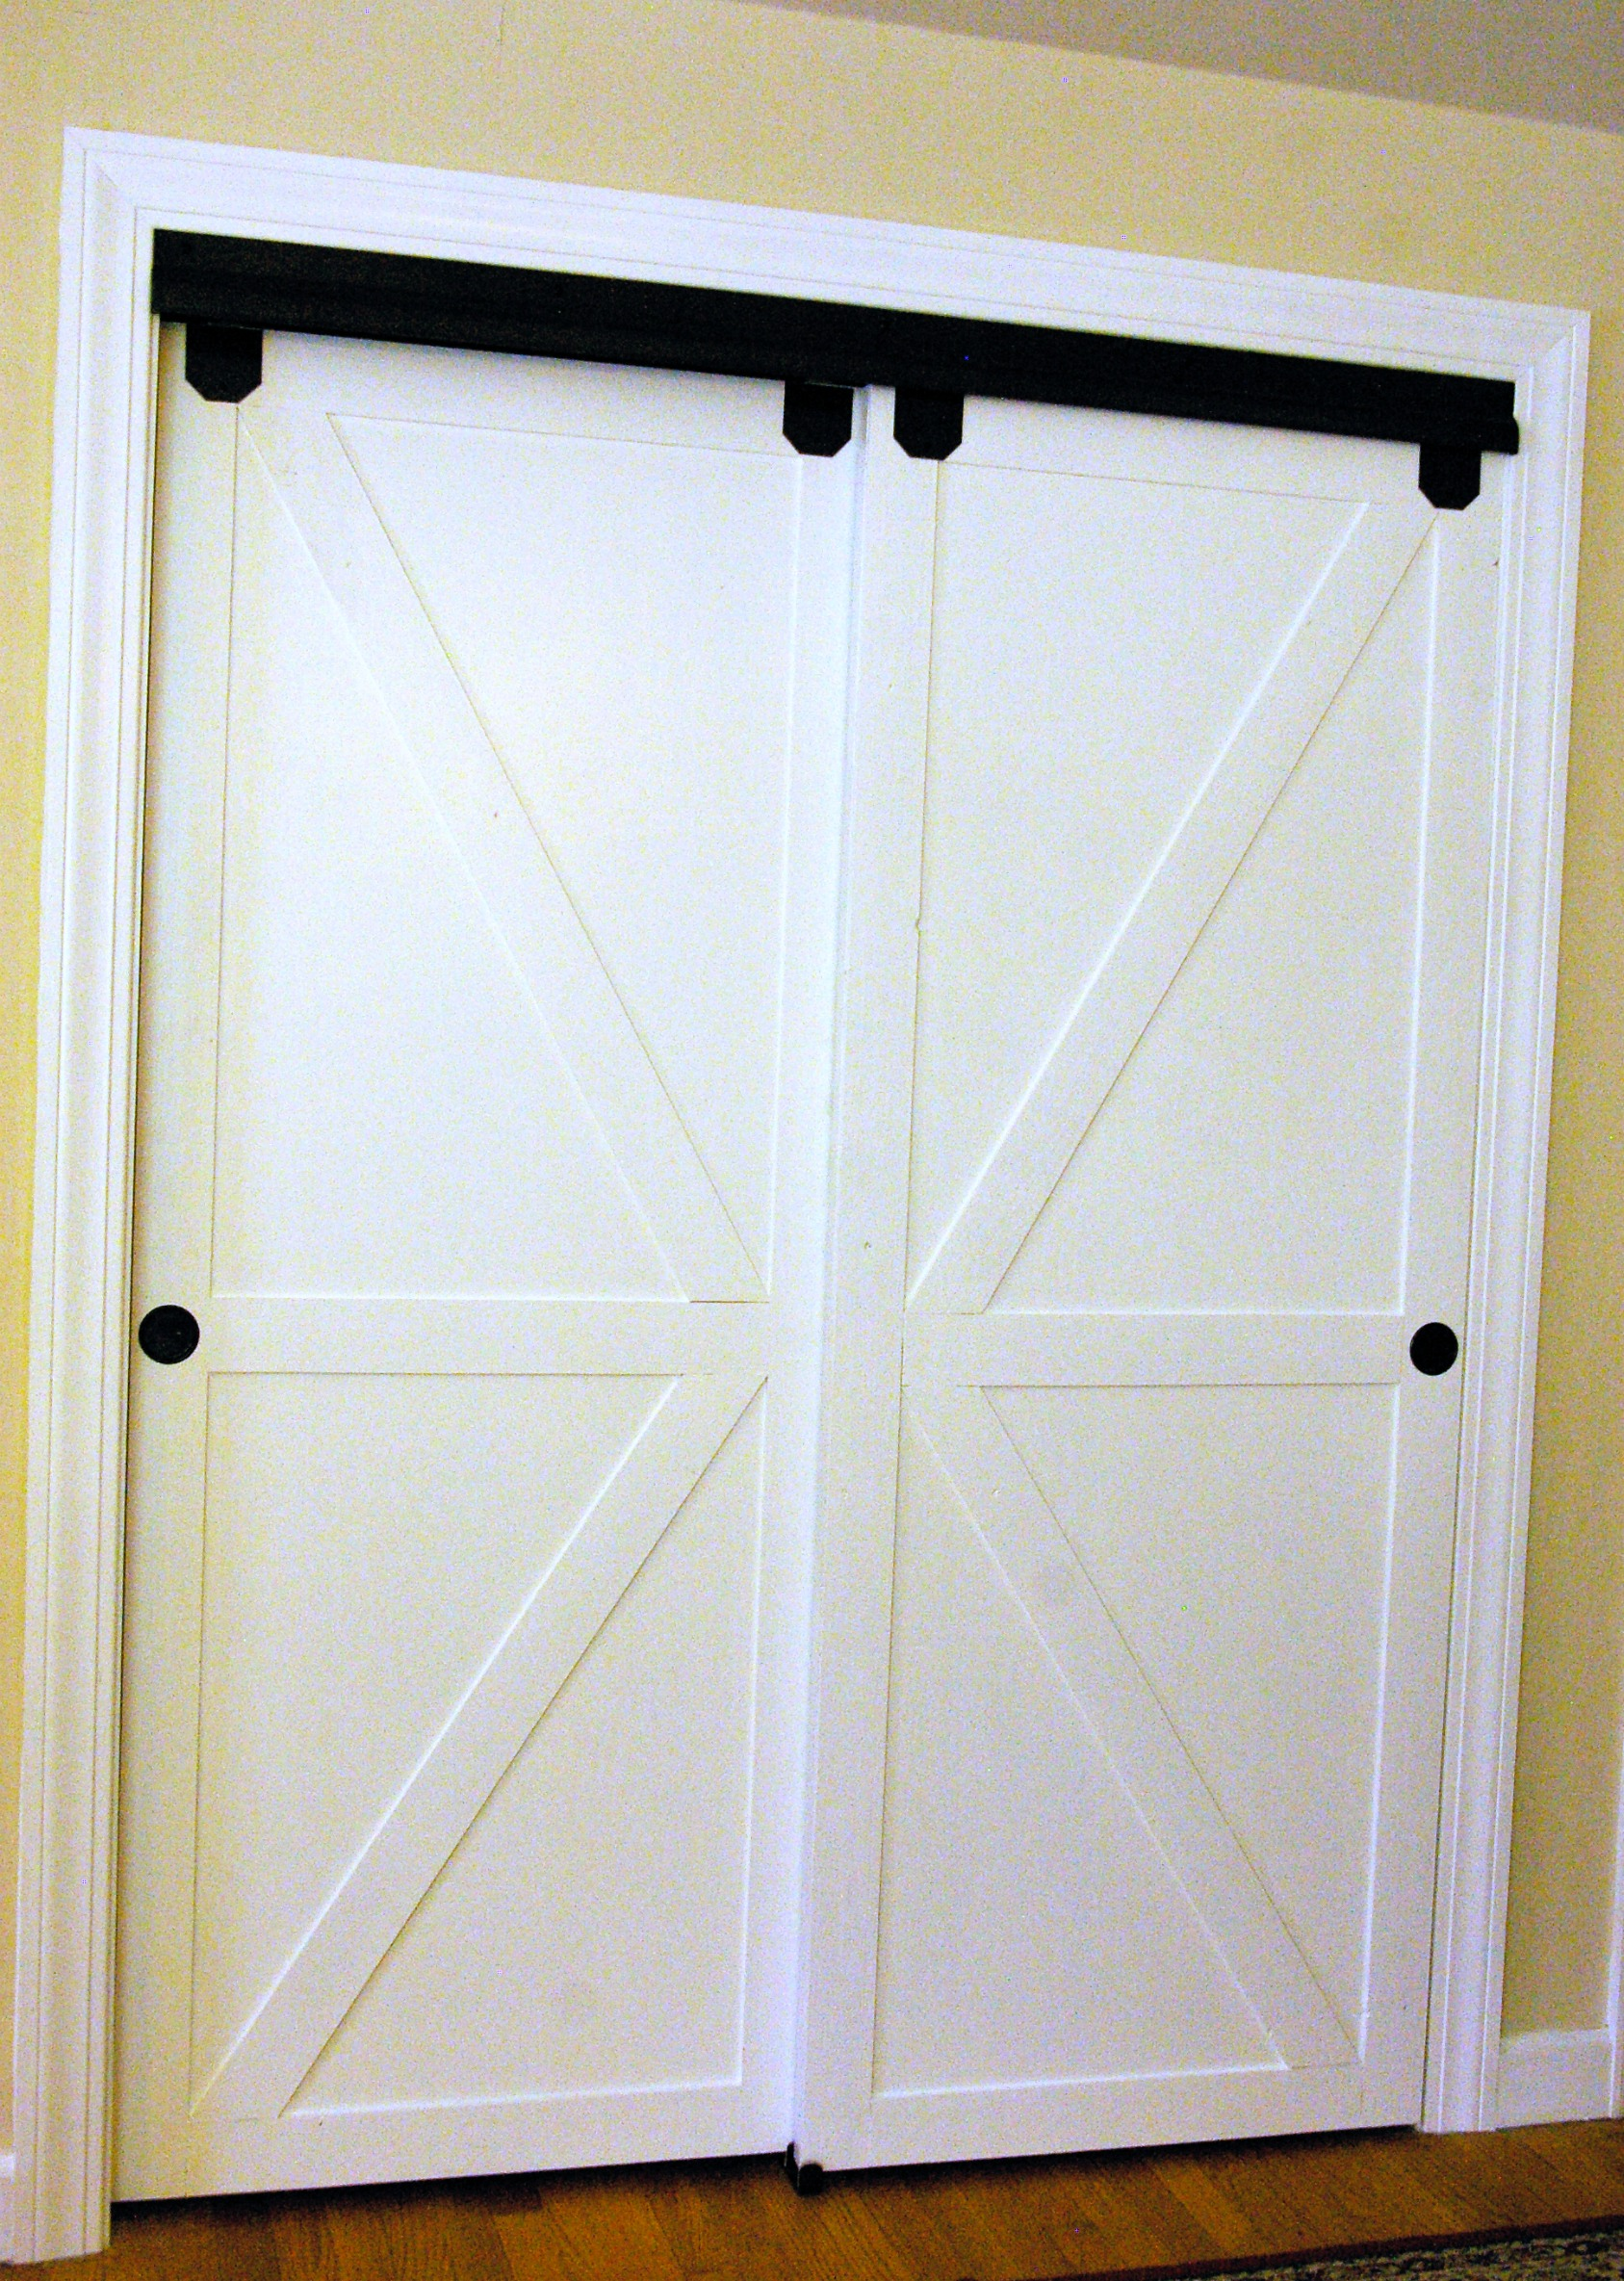 Diy Faux Barn Doors On A Sliding Bypass Closet Door 02 Featured On @Remodelaholic Edit & Remodelaholic | How to Make Bypass Closet Doors Into Sliding Faux ...